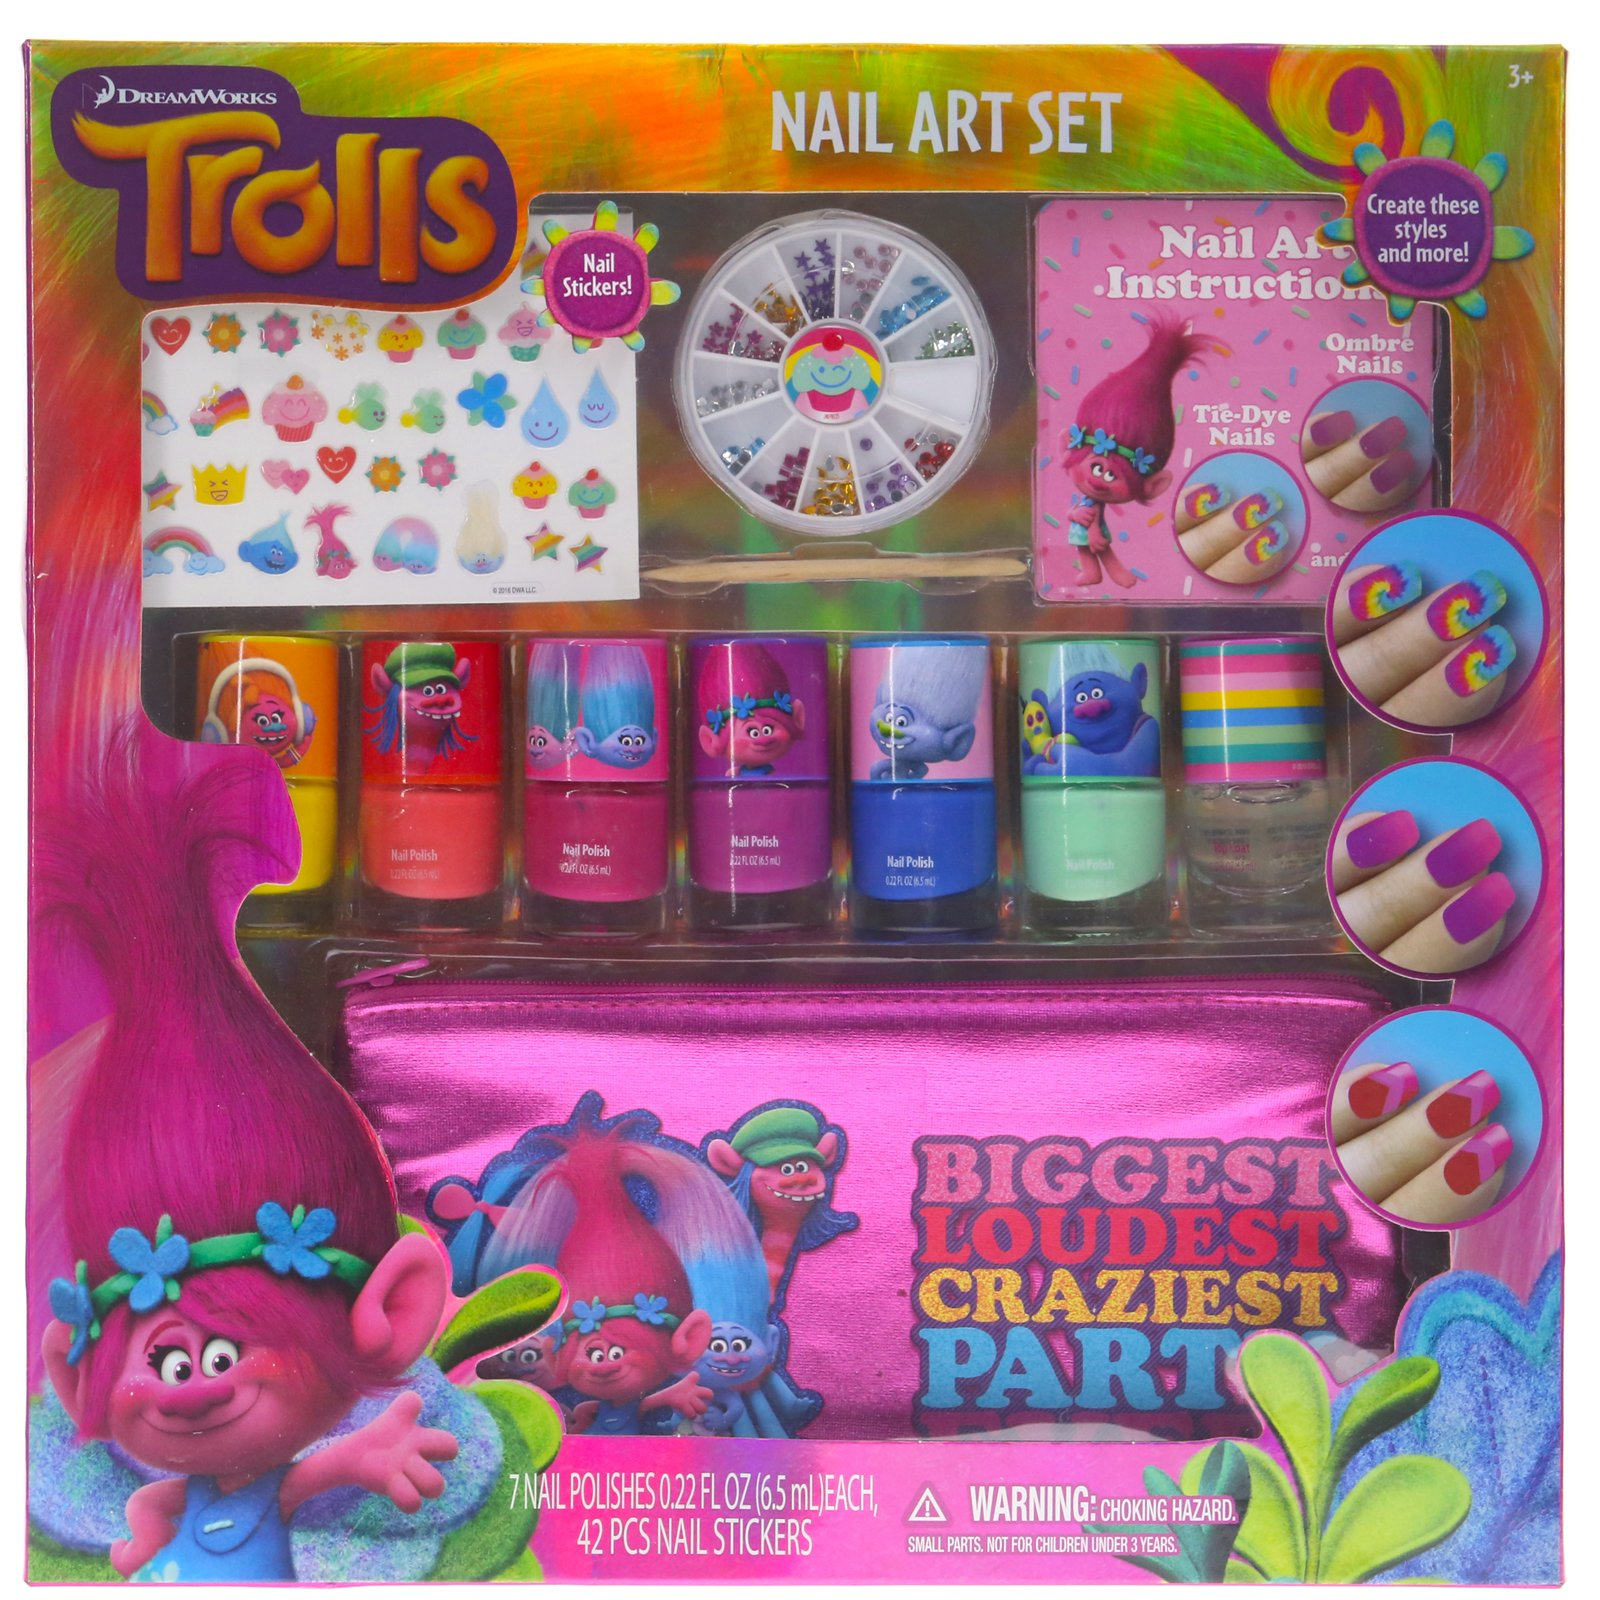 Townley Girl Dreamworks Trolls Nail Art Set, Includes: 240 Nail Gems, 42 Stickers, 7 Polishes, Carrying Bag